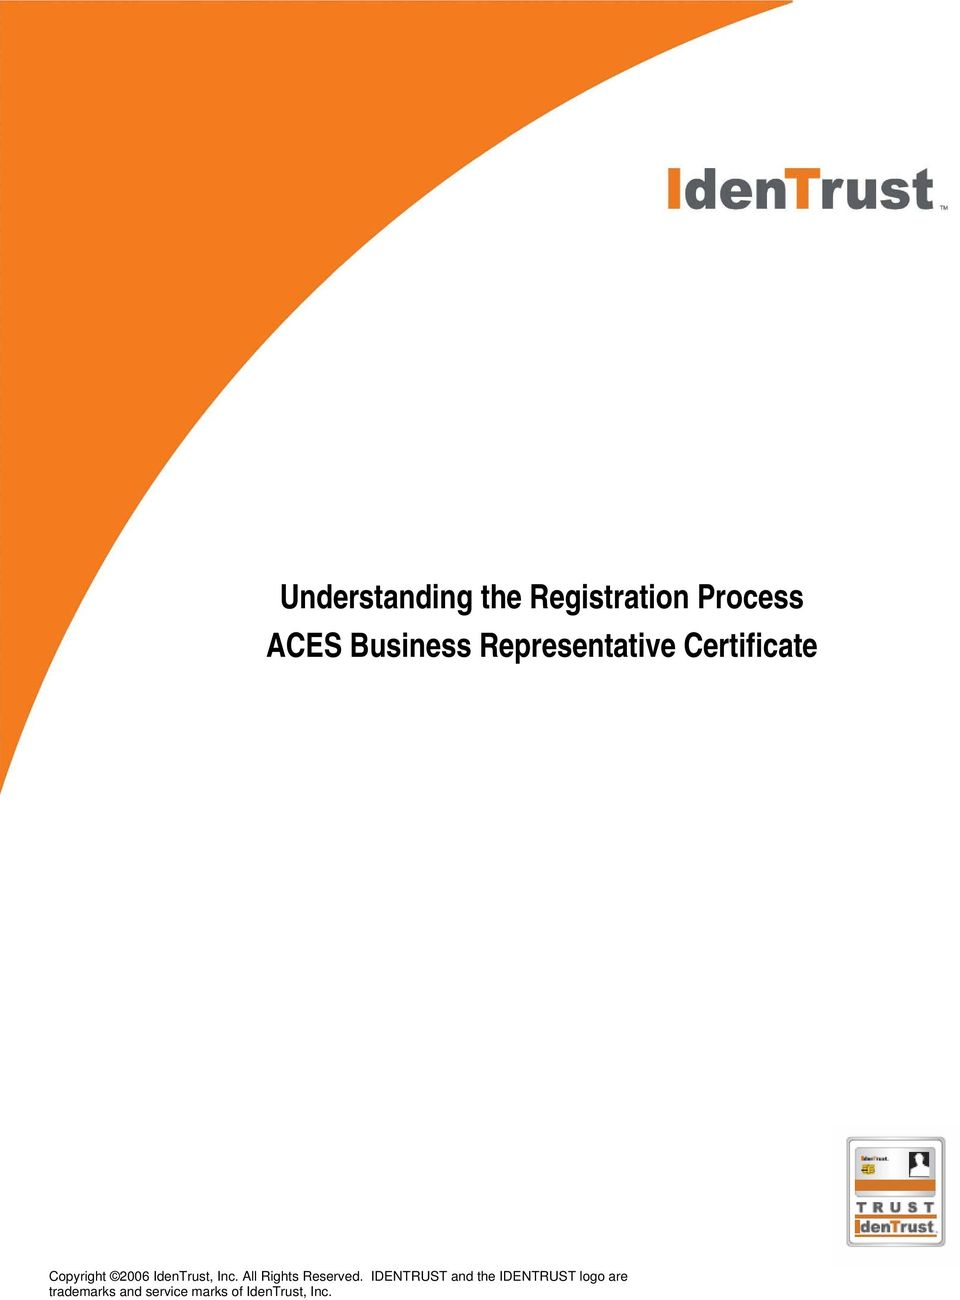 Understanding the Registration Process ACES Business Representative